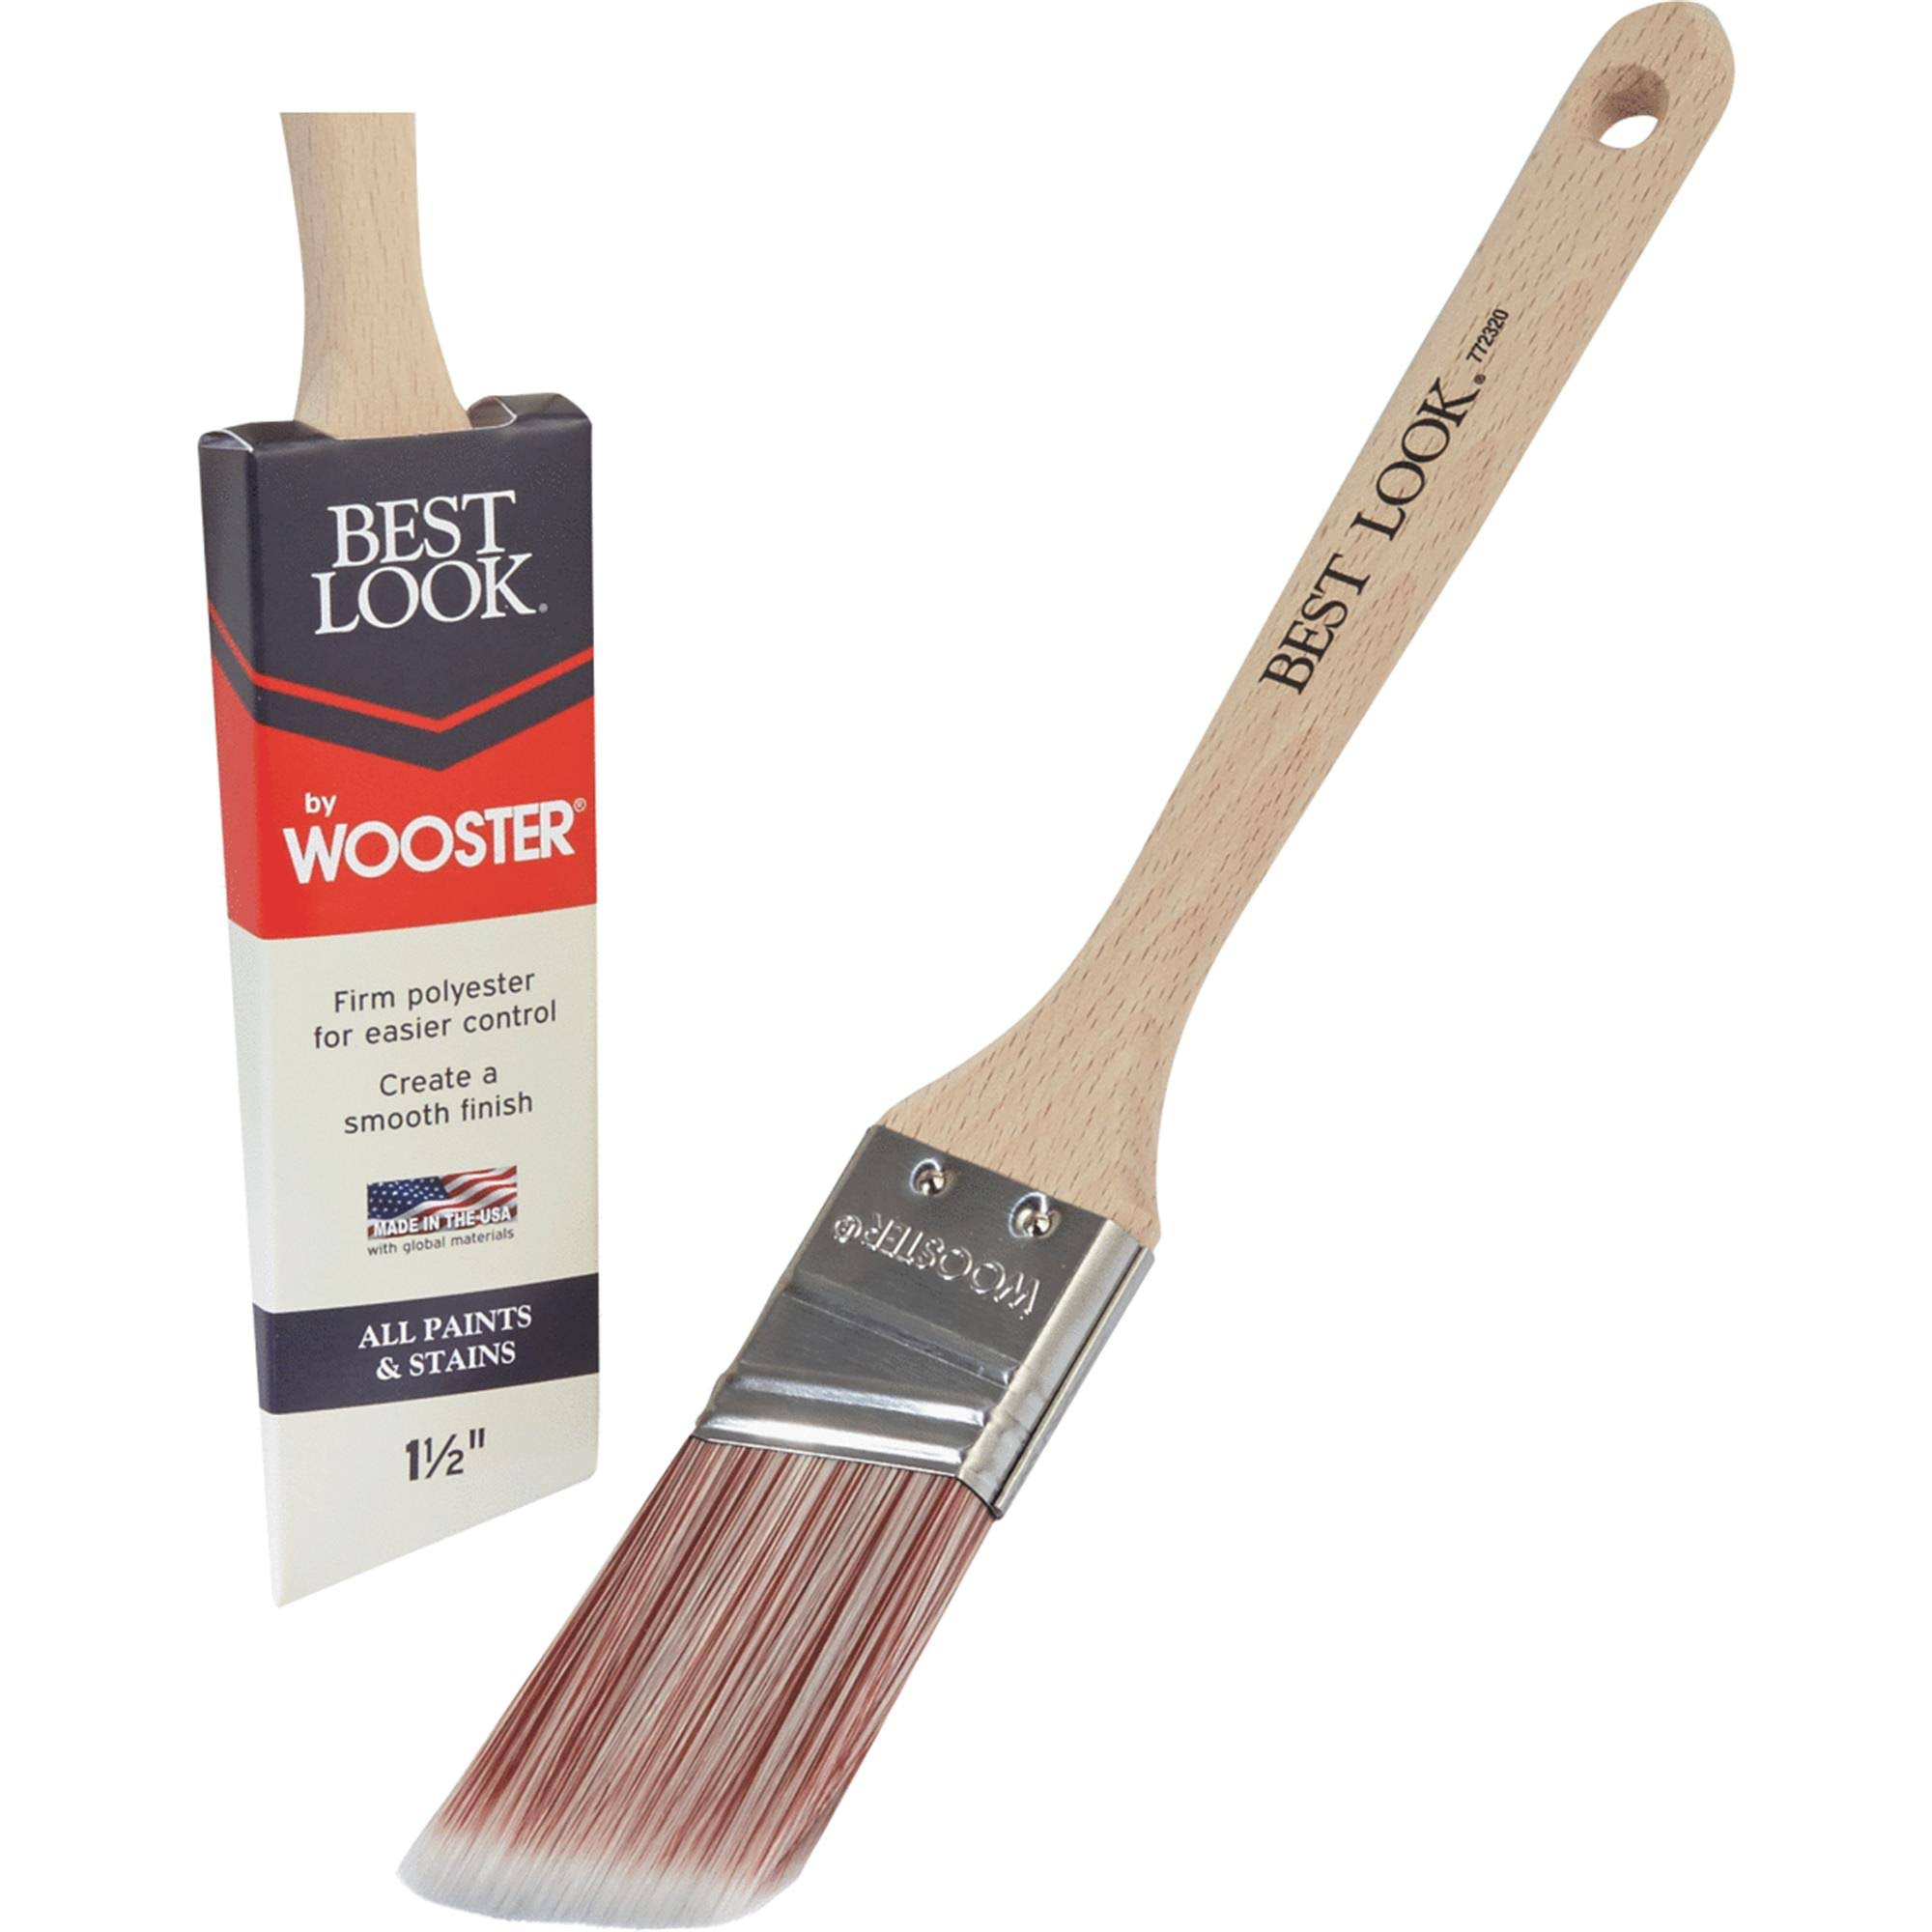 "Wooster Brush 1.5"" A/S Paint Brush D4022-1 1/2"